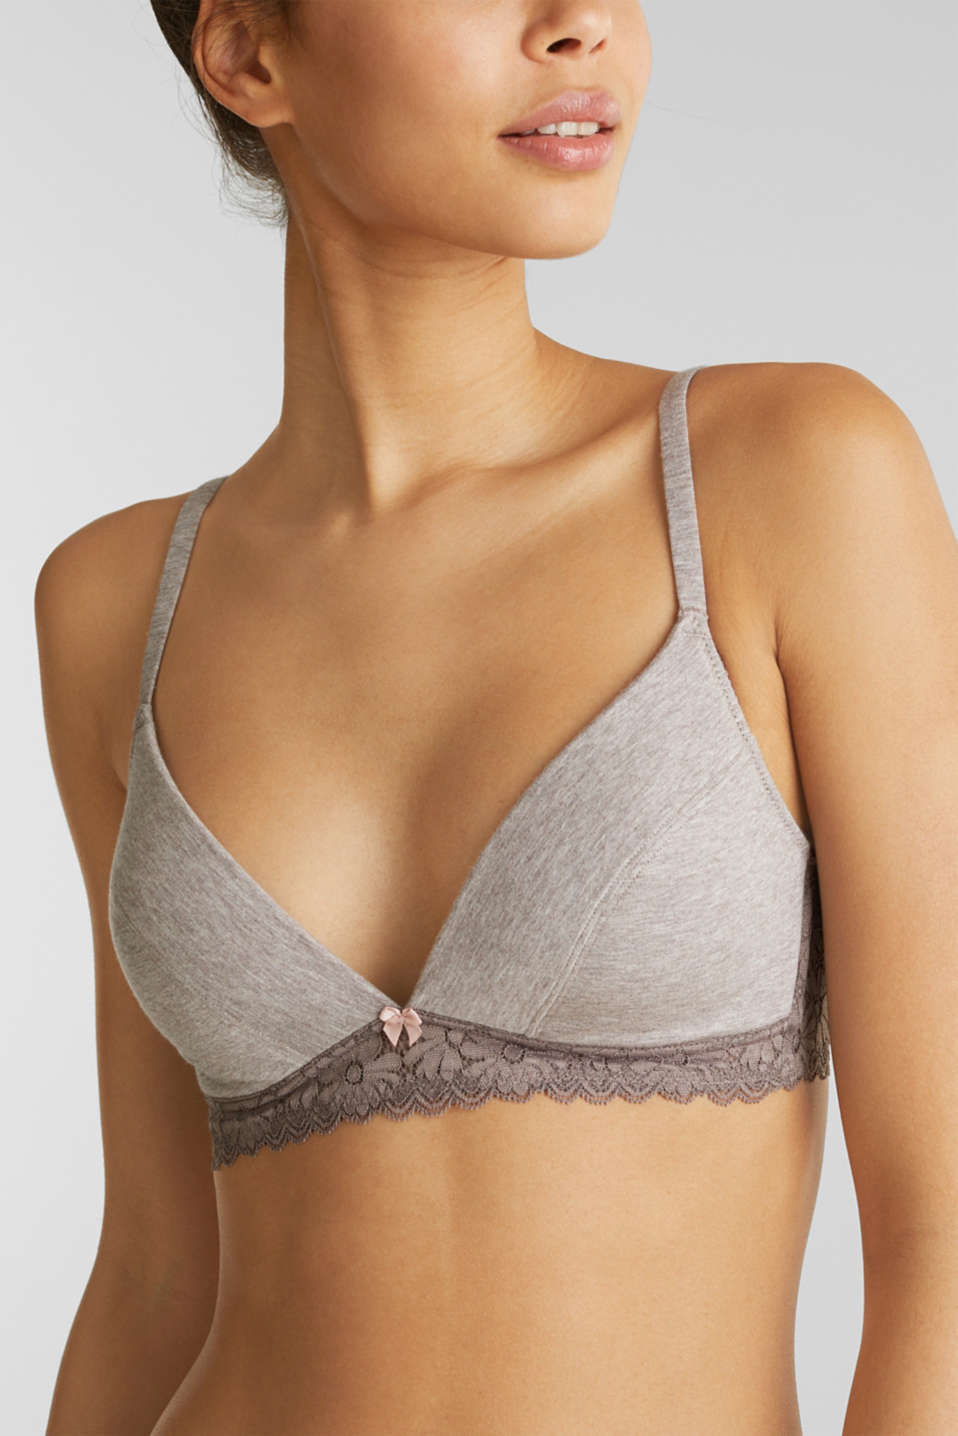 Padded, non-wired bra made of jersey/lace, LIGHT TAUPE, detail image number 2